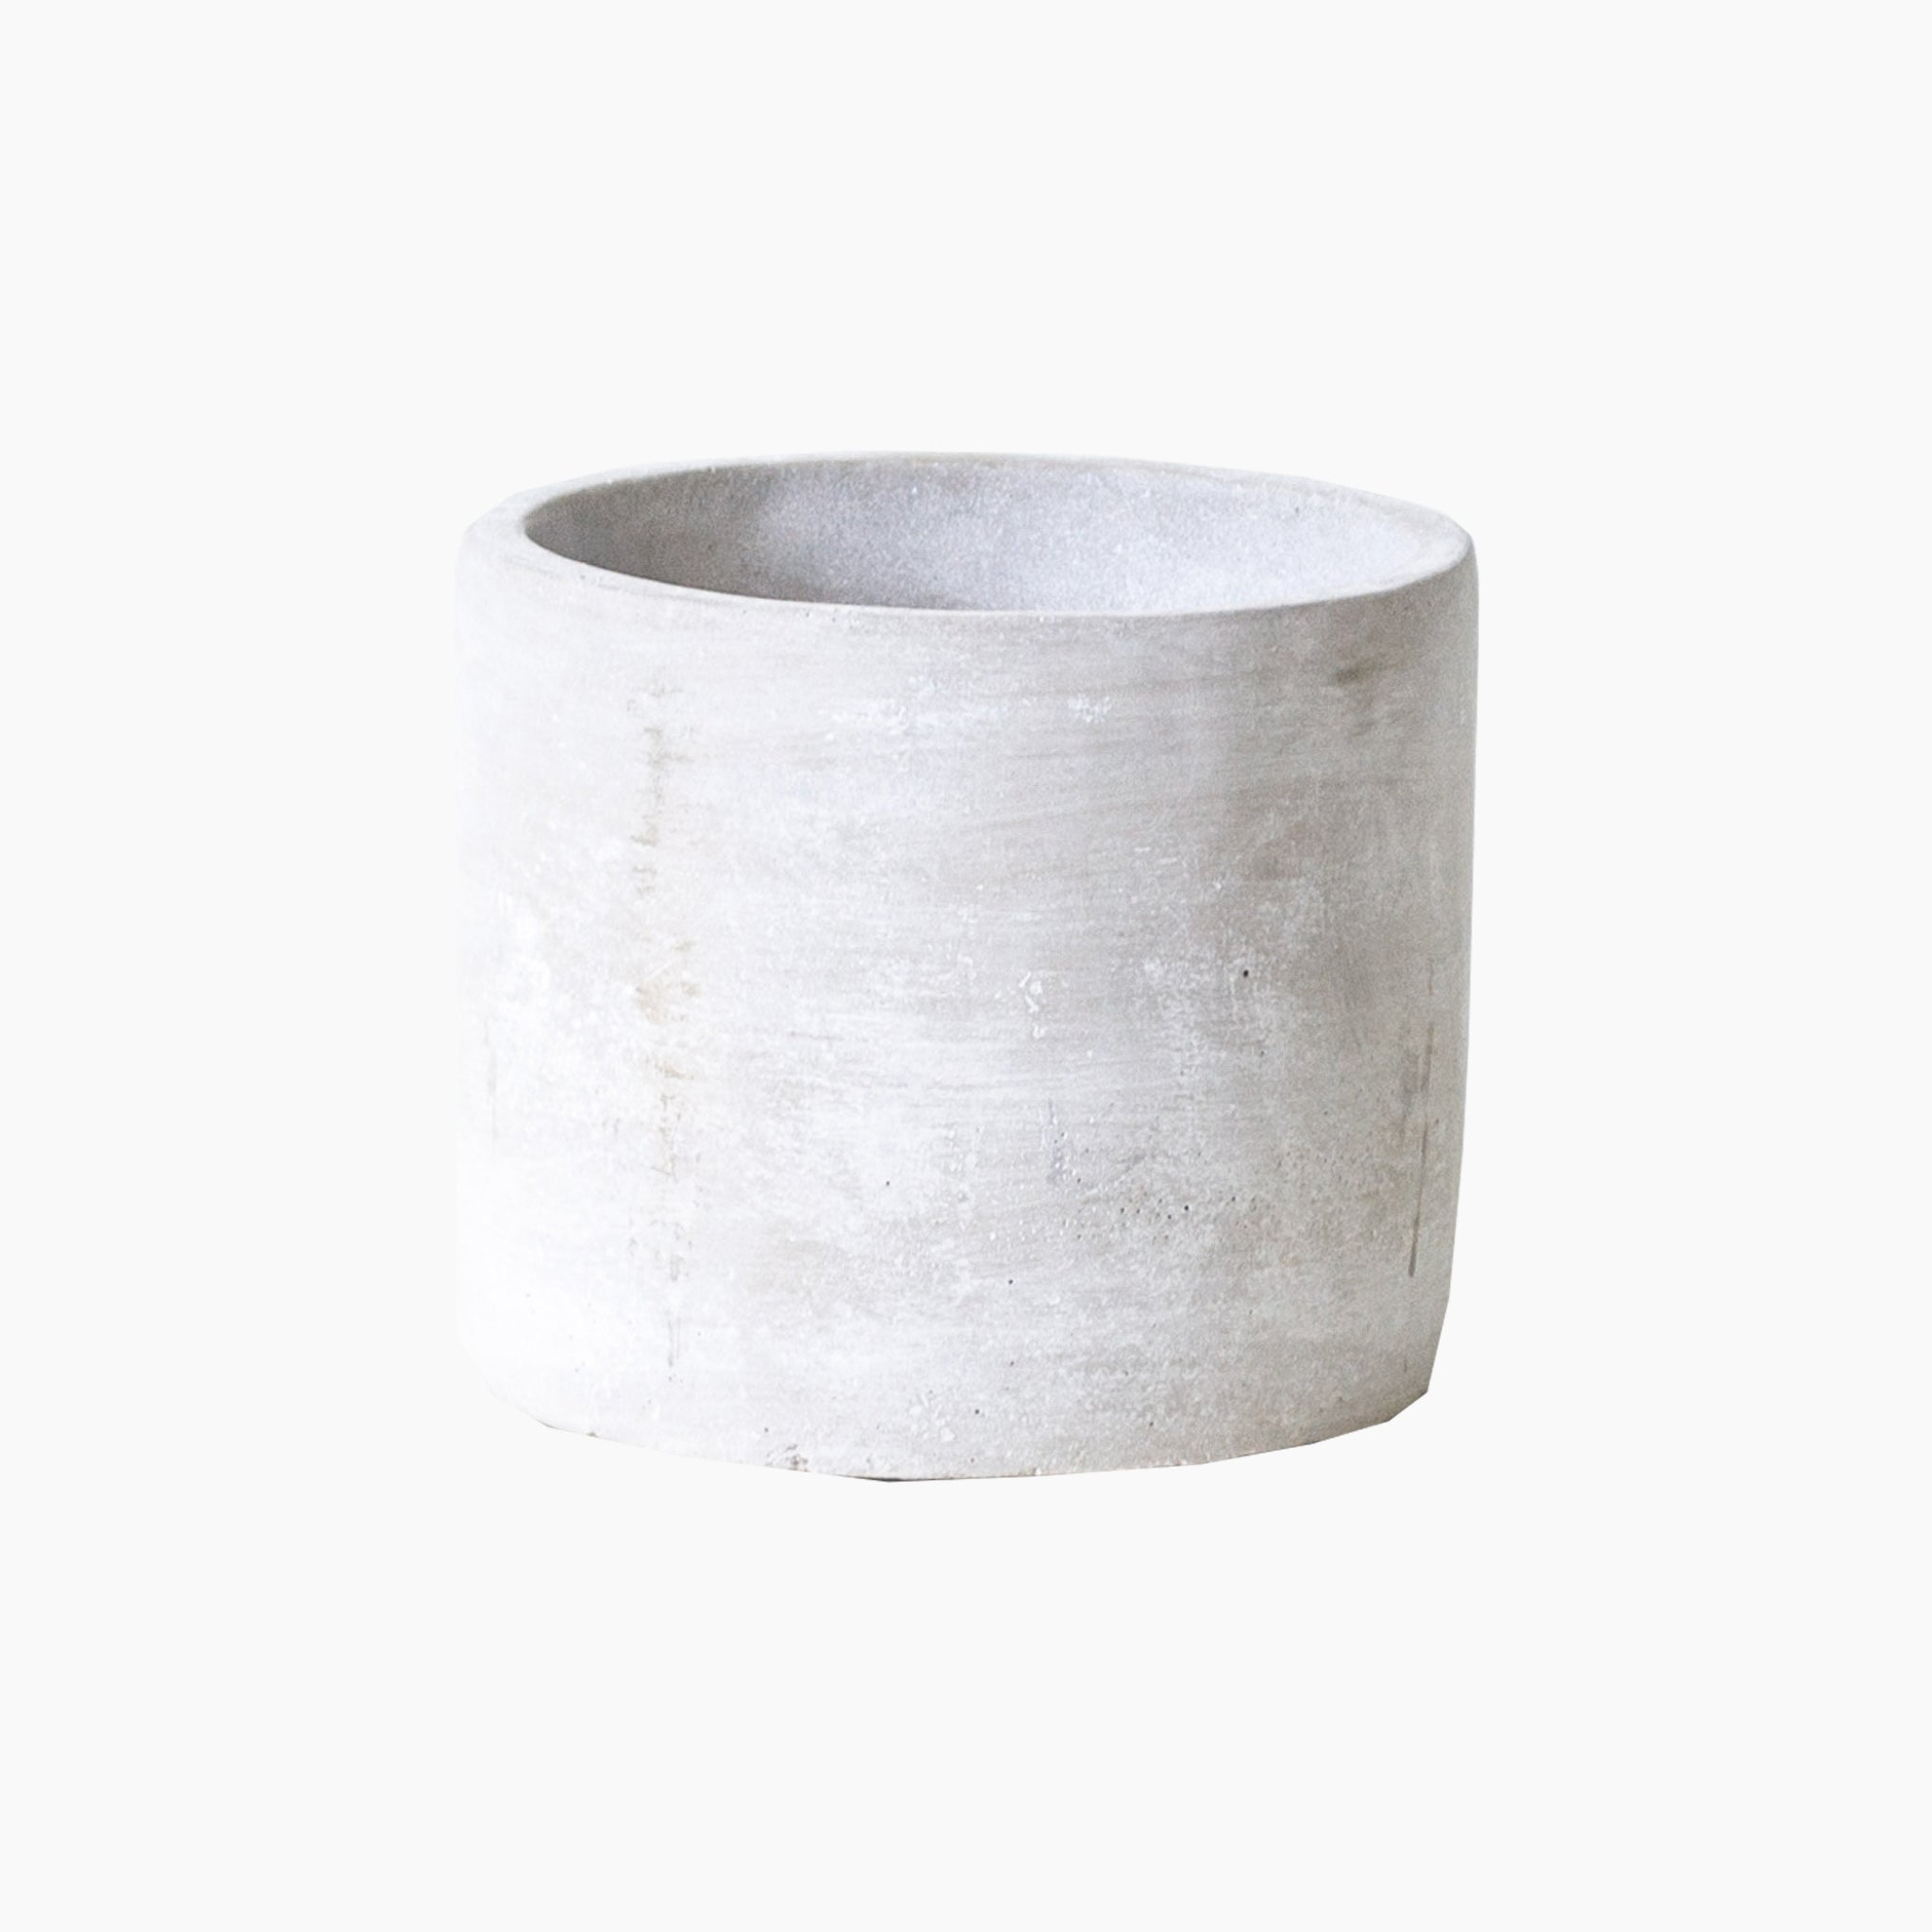 Smooth cement pot